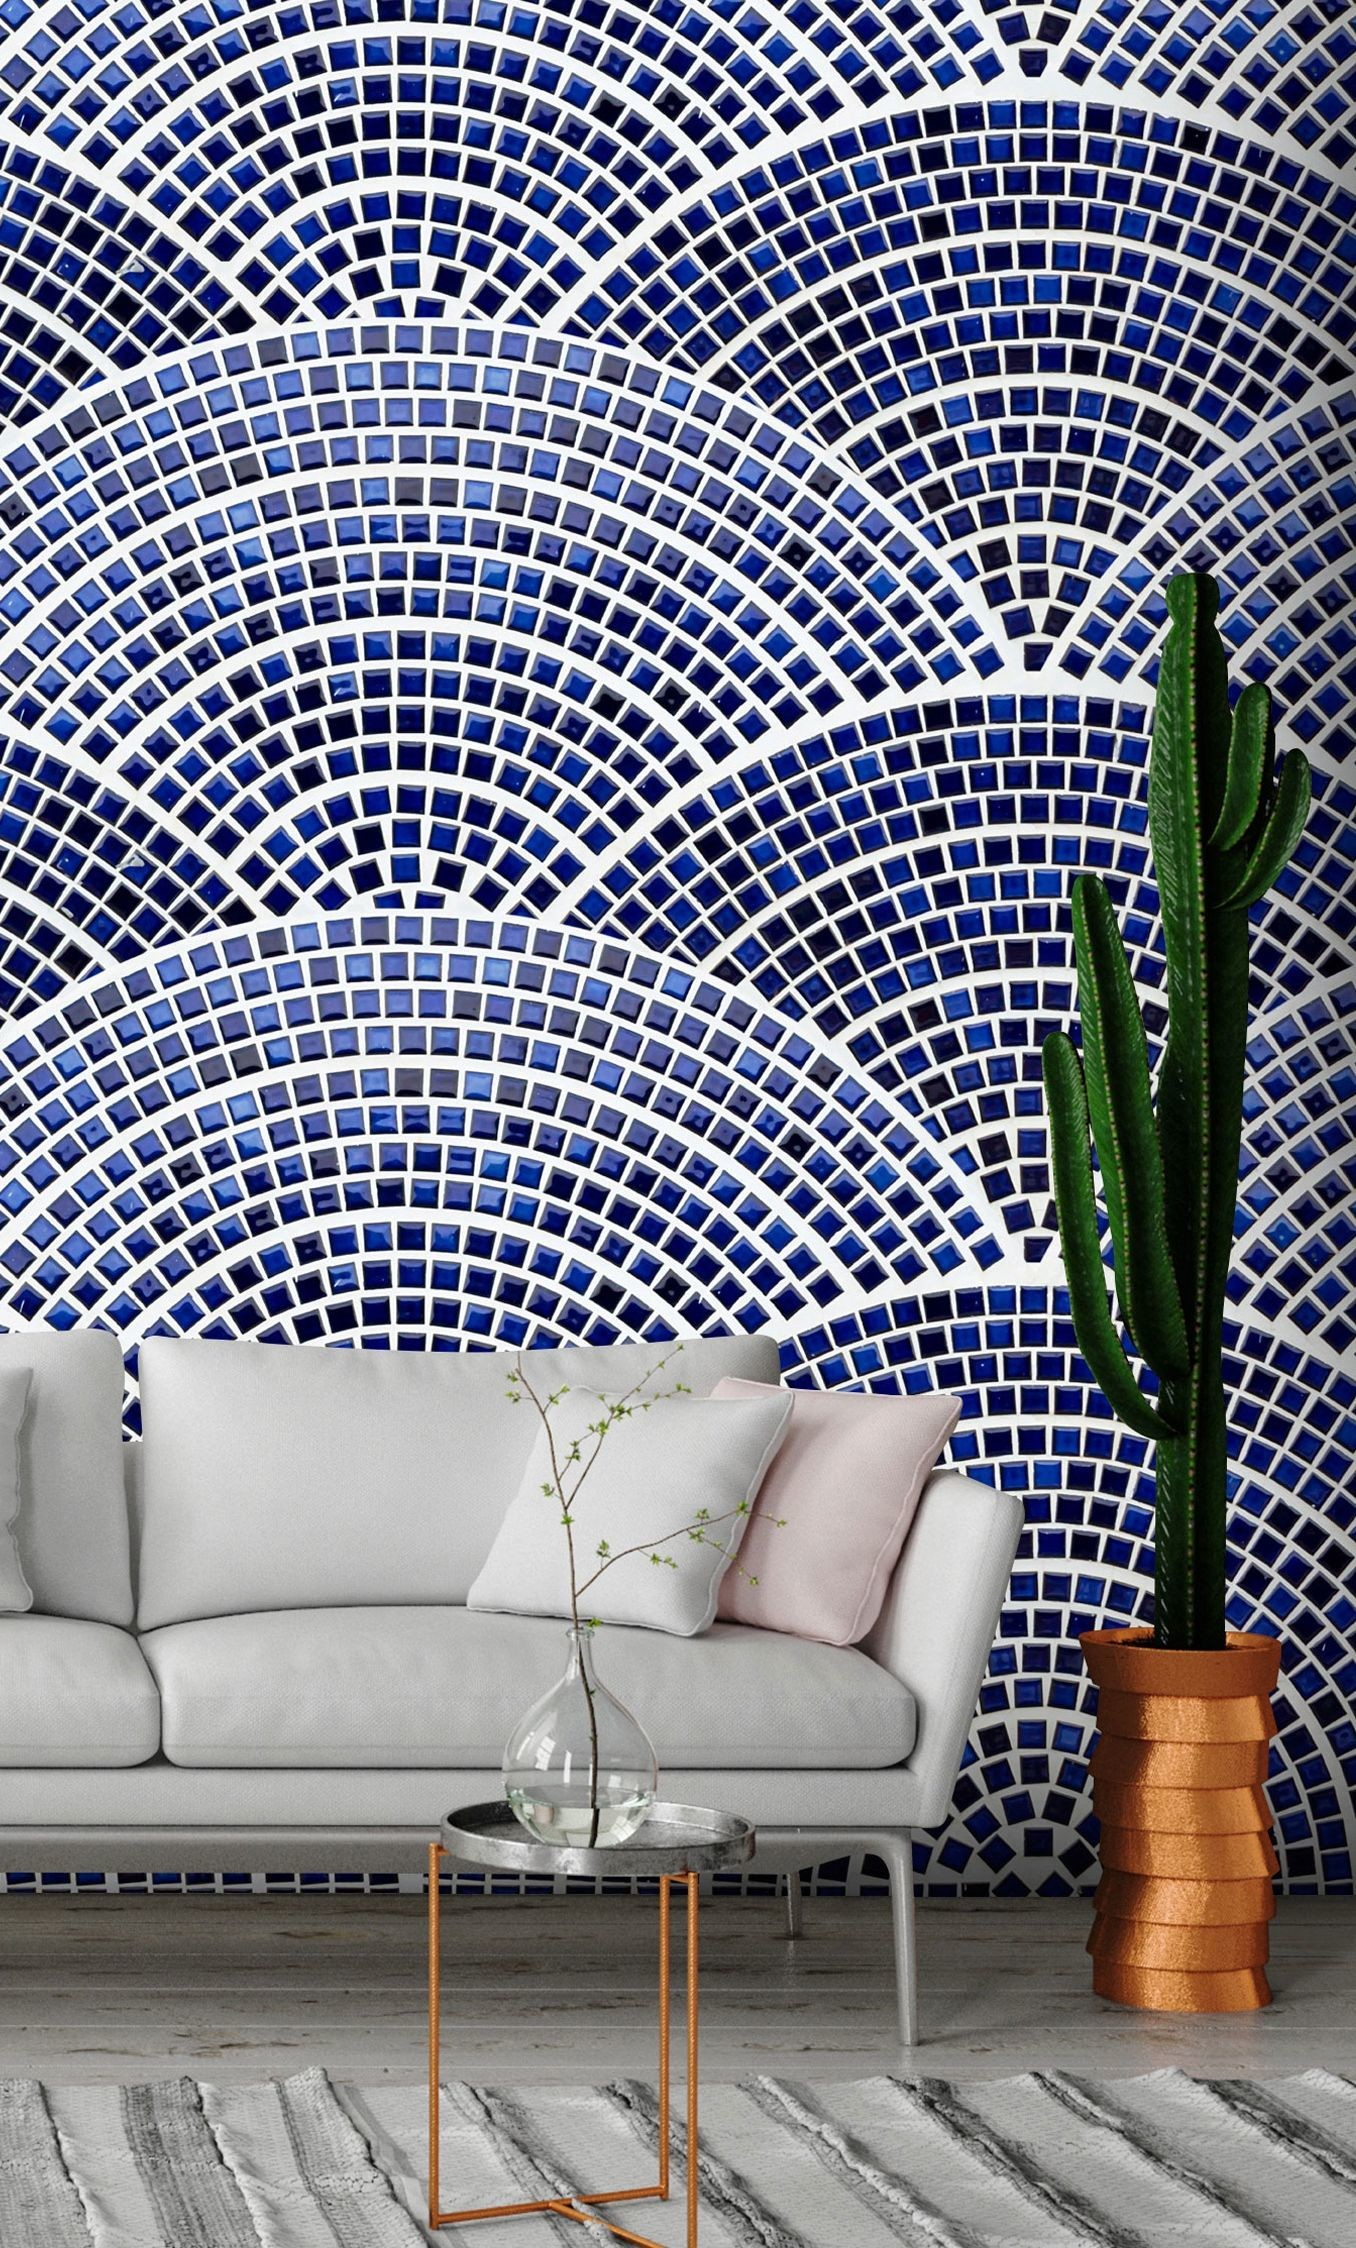 """Res: 1356x2248, Wallpaper """"Semicircular Mosaic"""" with geometric patterns of oversized blue  scales. This non-woven photo wall mural looks exquisitely natural on walls  and ..."""